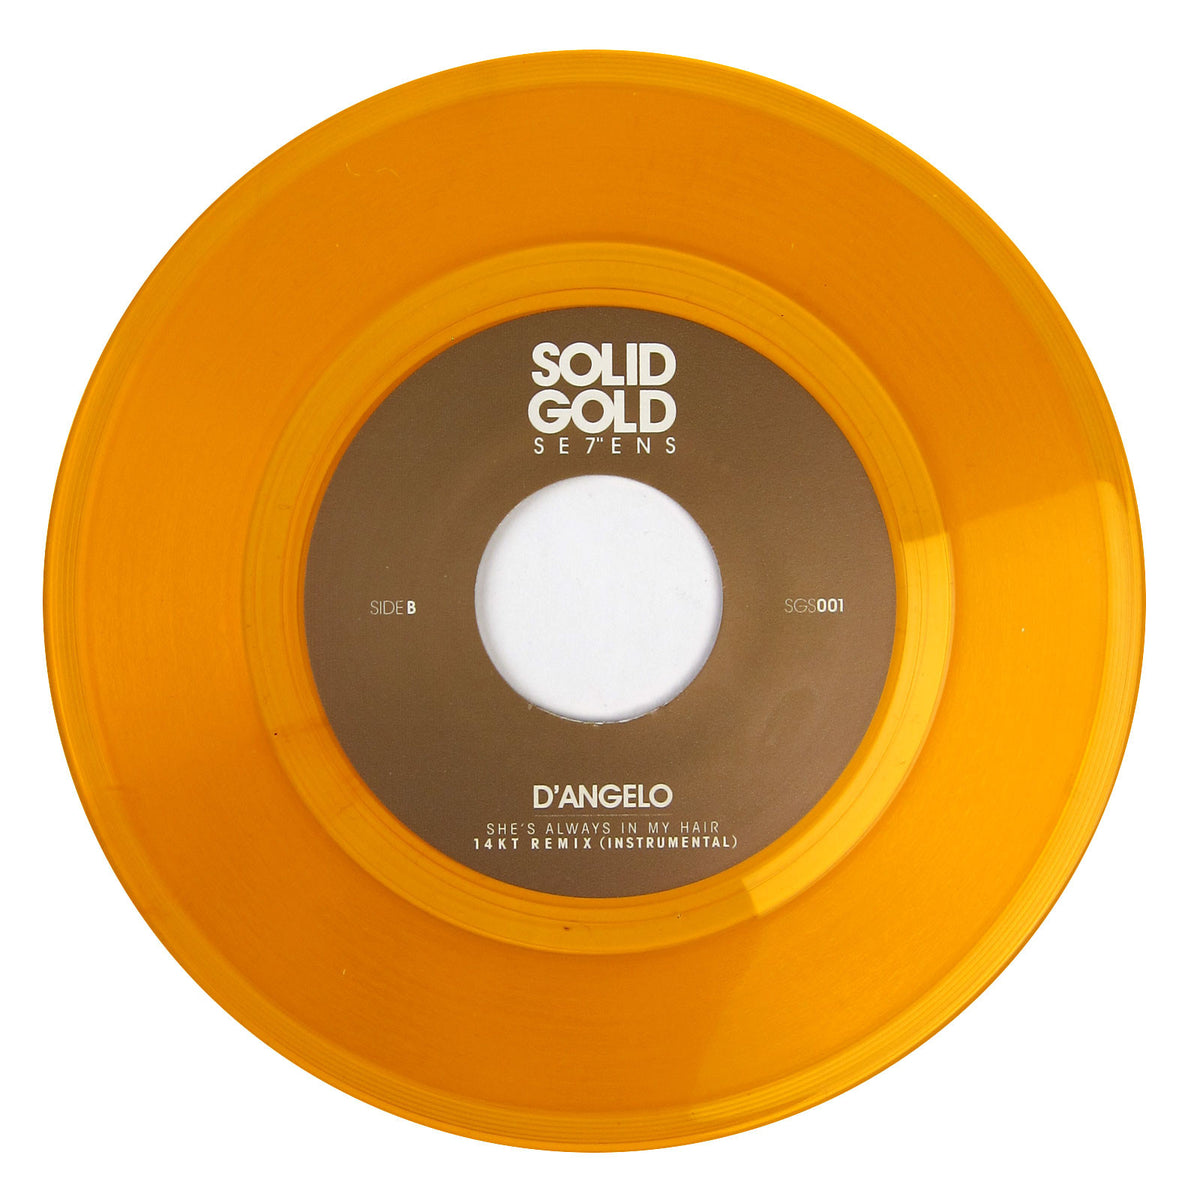 D'Angelo: She's Always In My Hair 14KT Remix (Colored Vinyl) Vinyl 7""